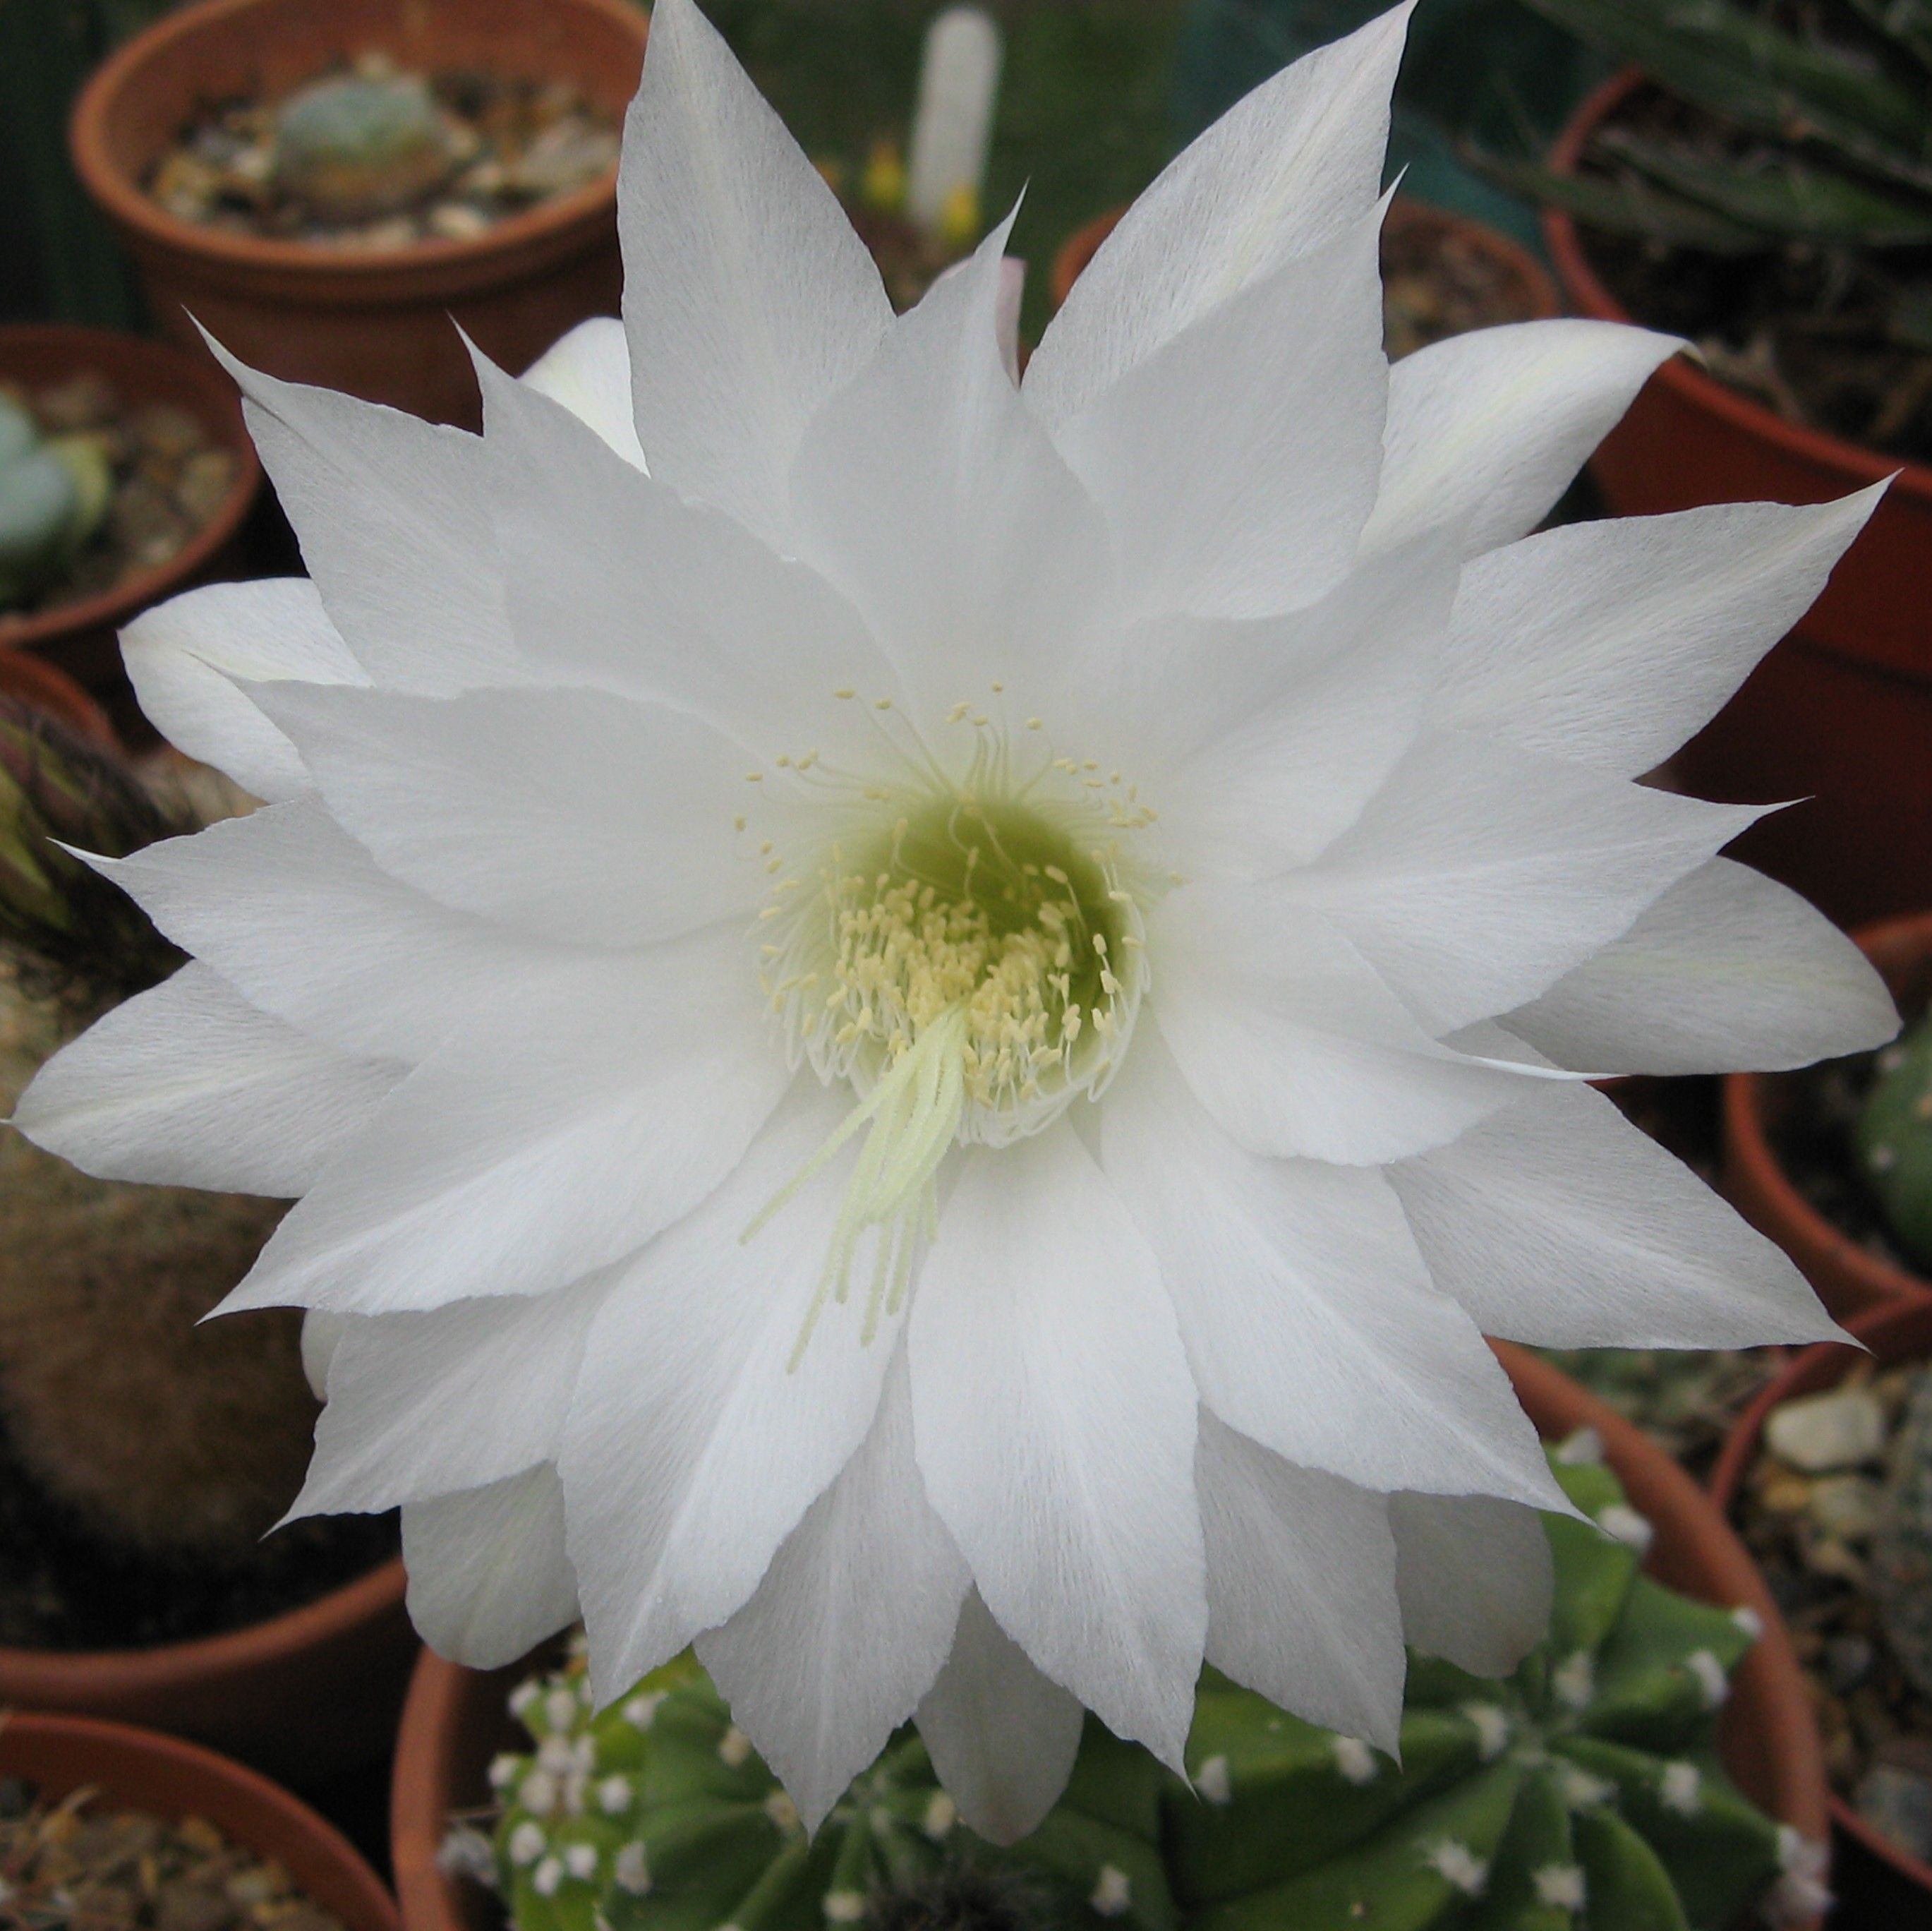 Echinopsis Subdenudata A Common Species With Large White Flowers